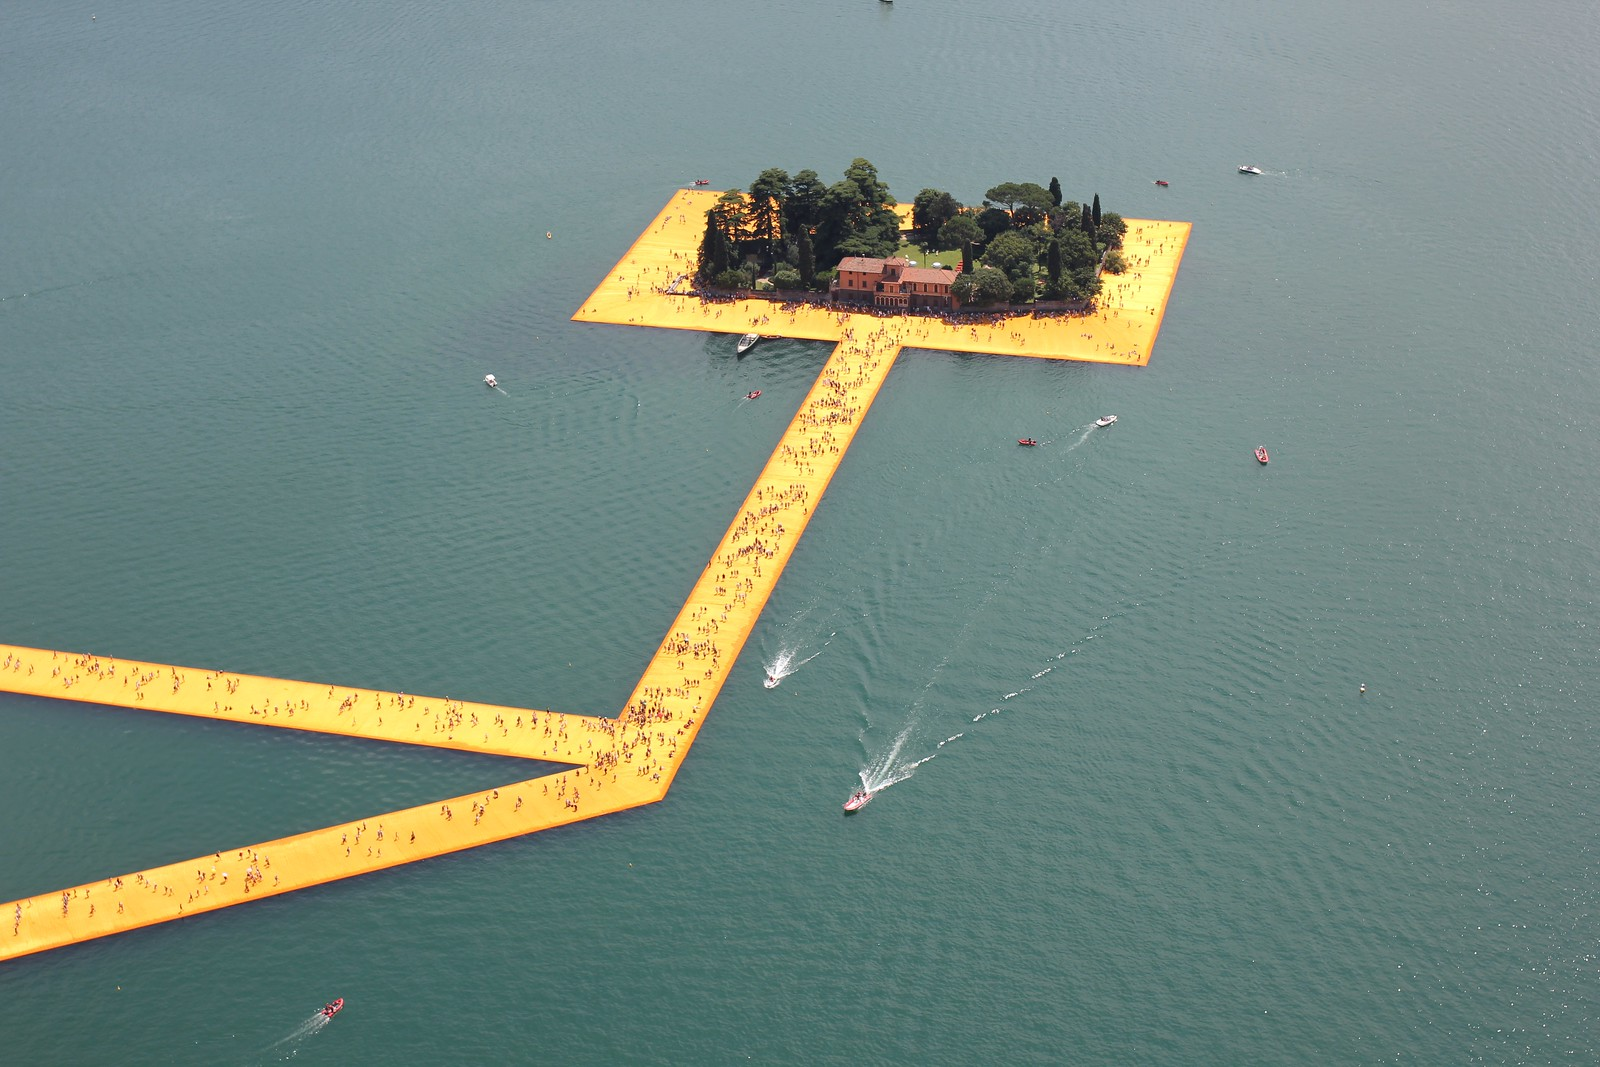 Christo and Jeanne-Claude: The Floating Piers Lago d'Iseo Italy